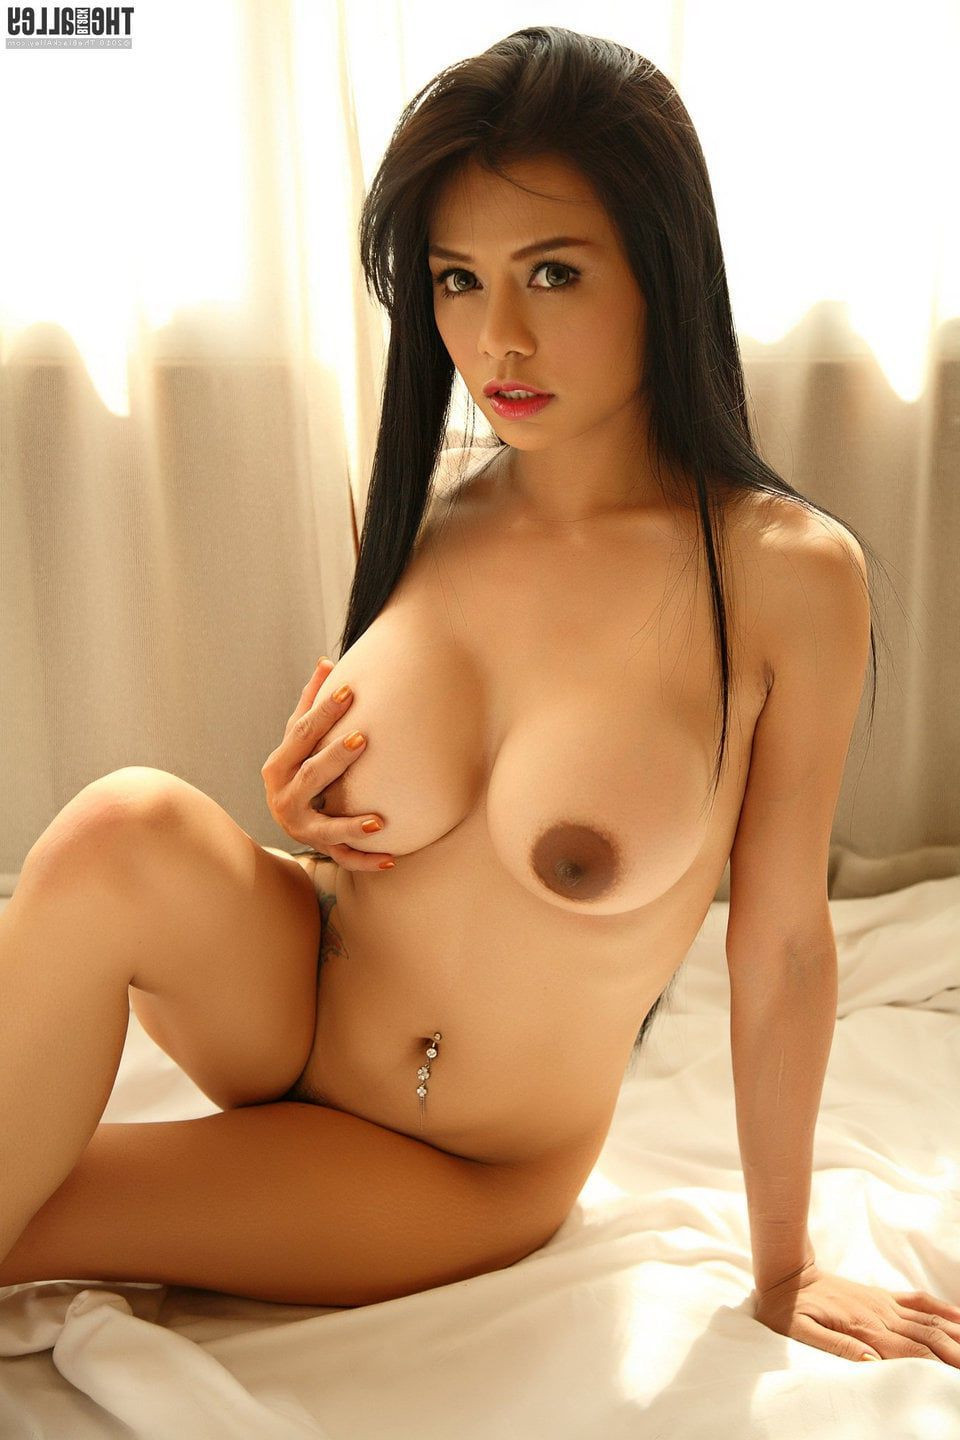 Asian boob girl hot super try reasonable